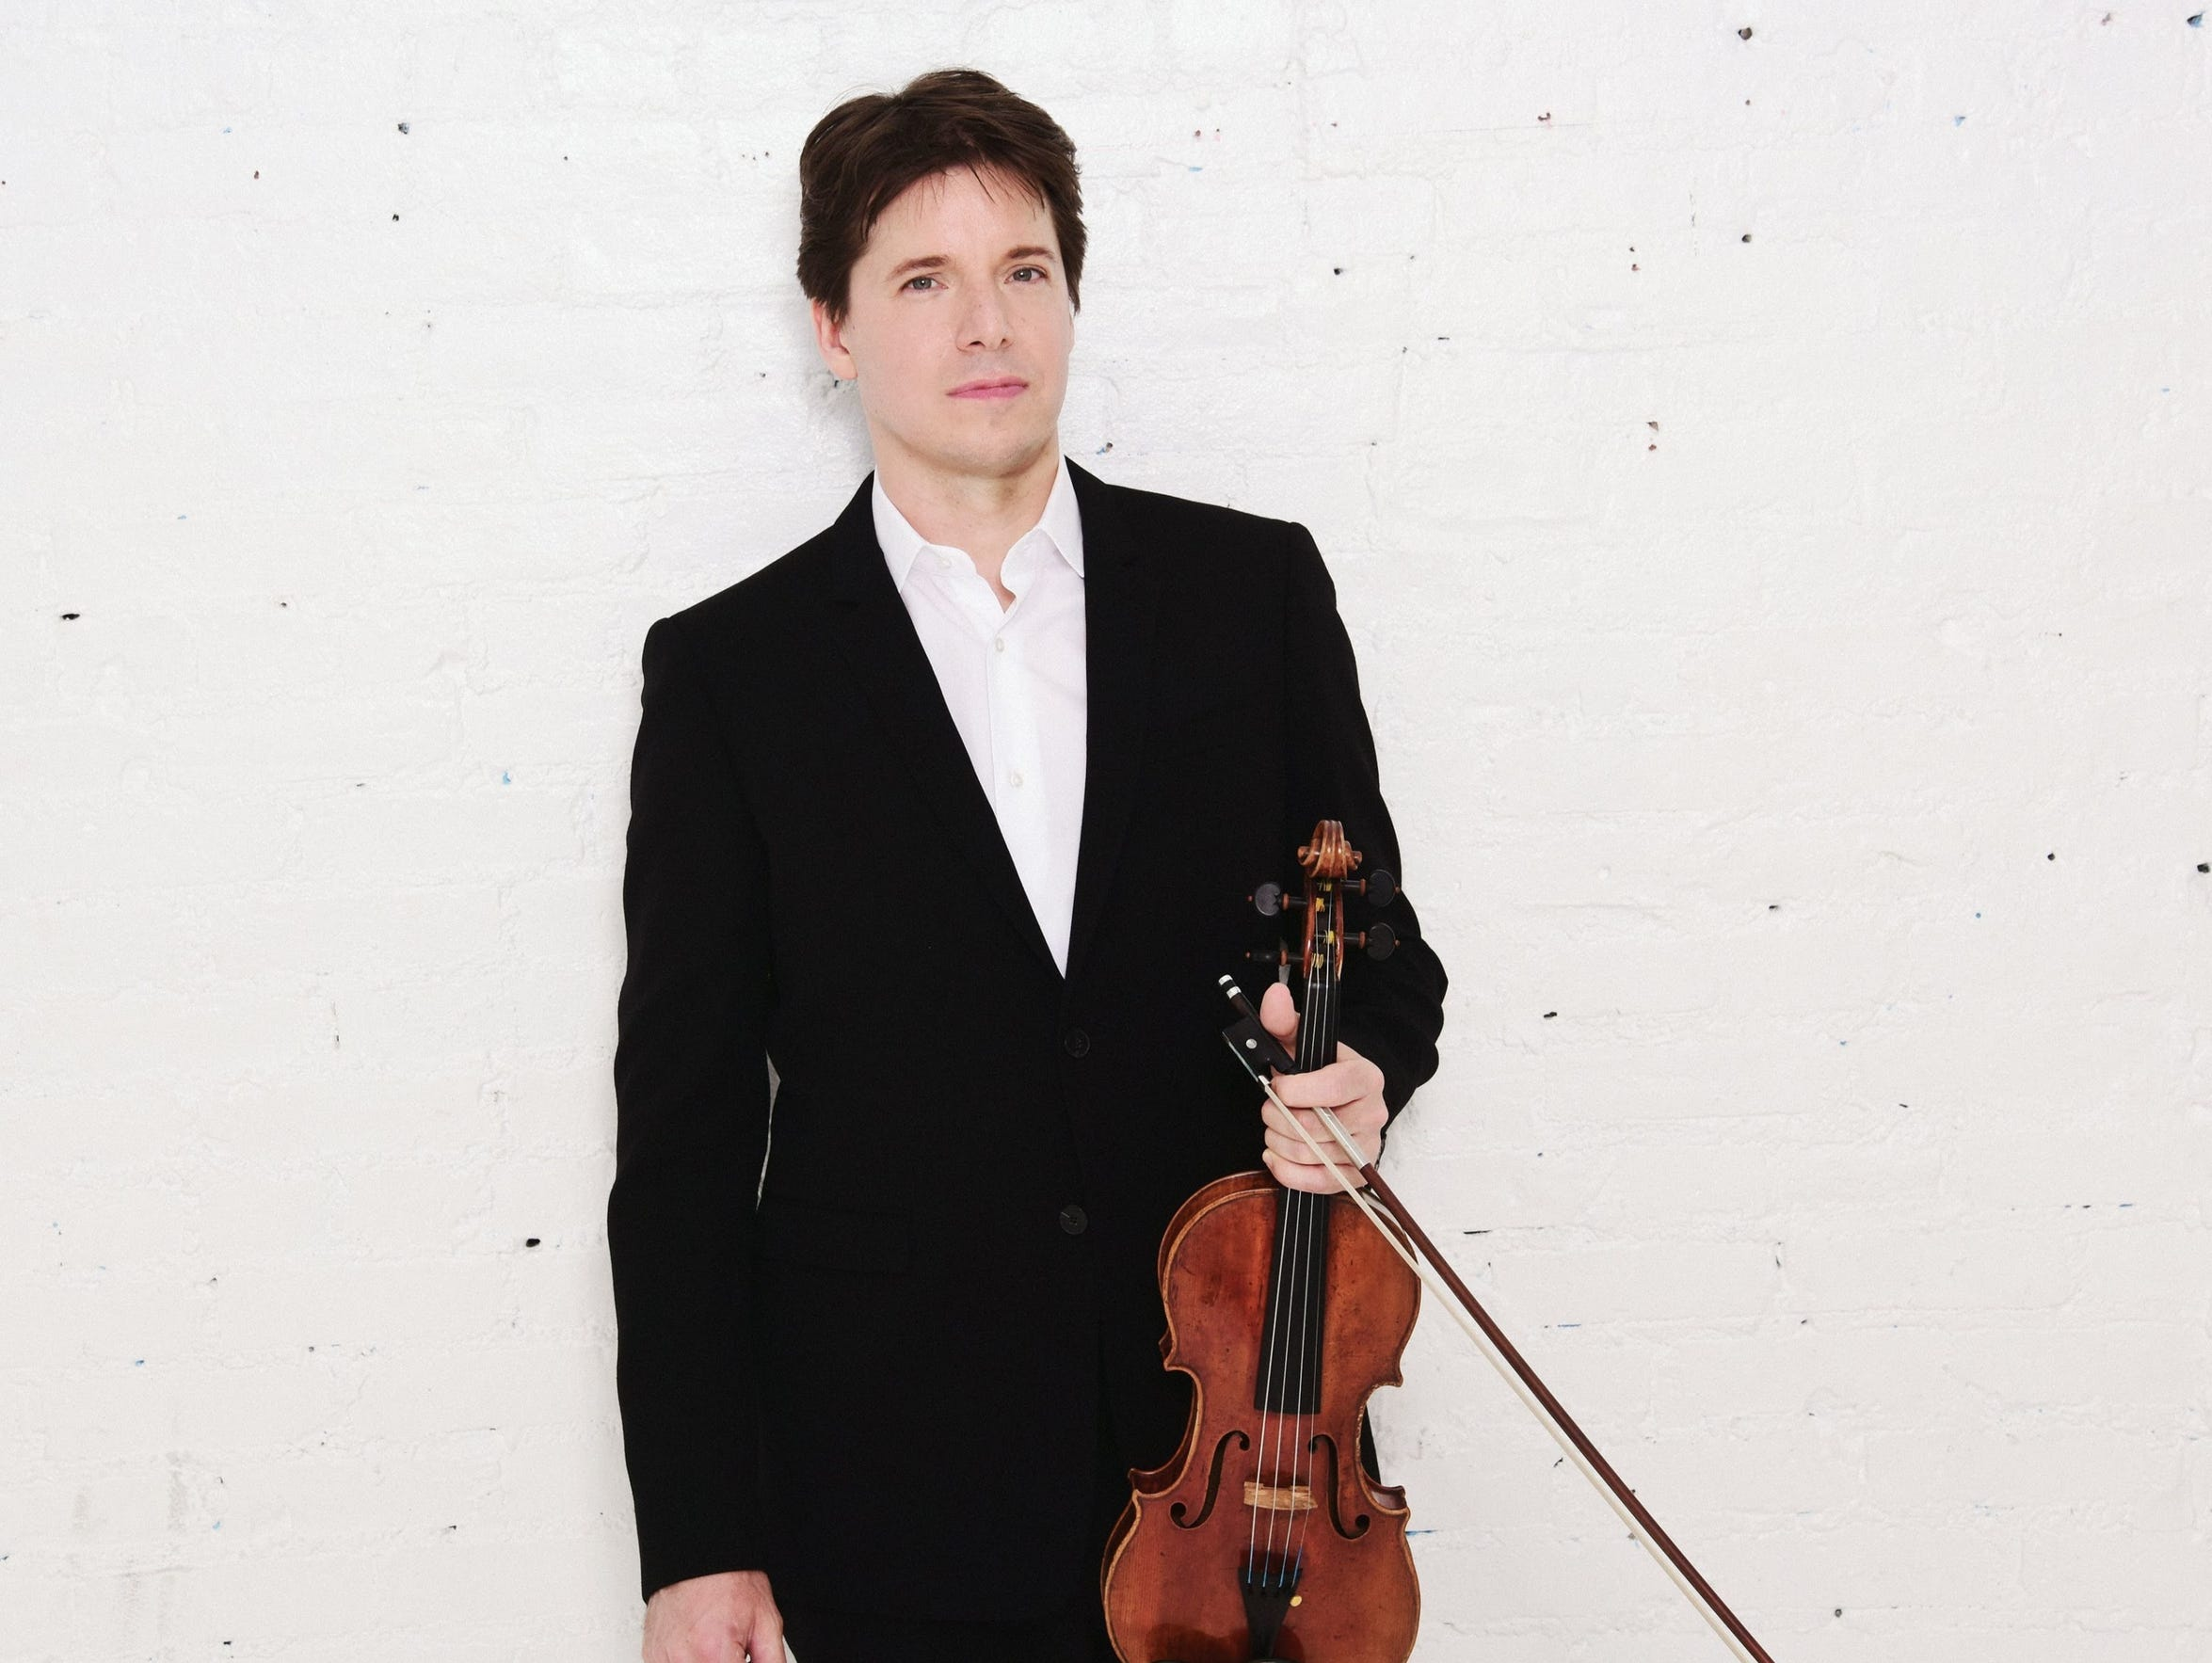 Joshua Bell is a Grammy Award winner who collected